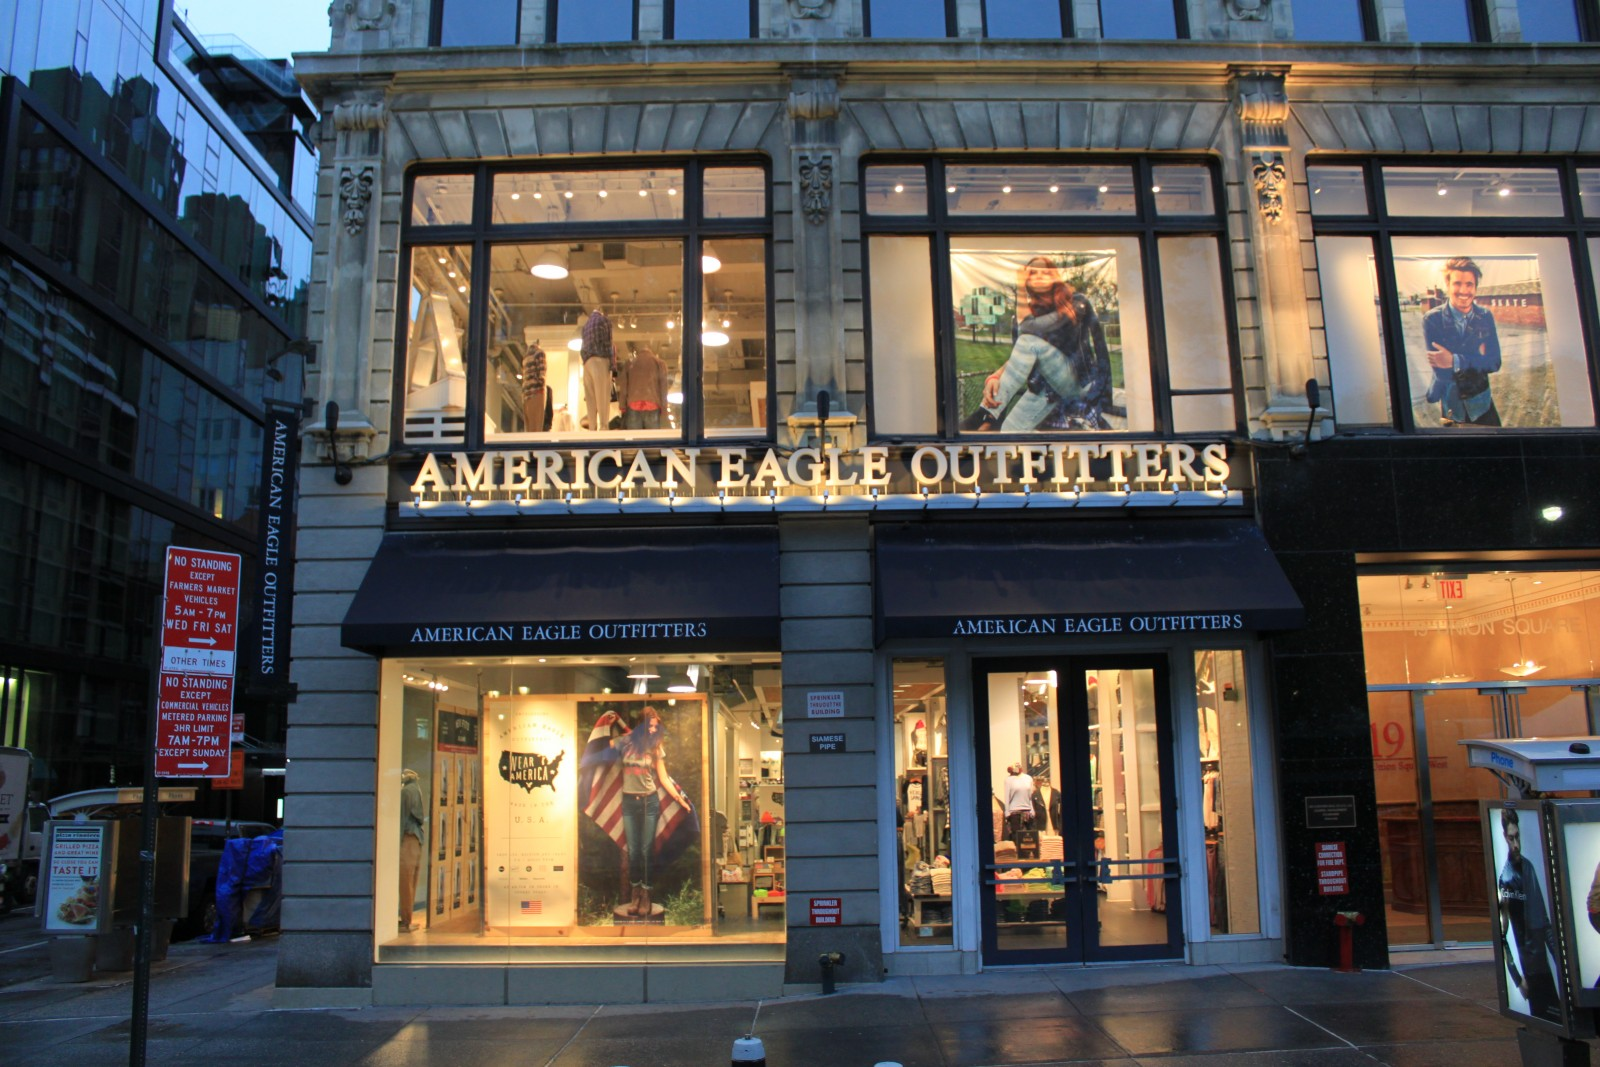 American Eagle Outfitters store locator displays list of stores in neighborhood, cities, states and countries. Database of American Eagle Outfitters stores, factory stores and the easiest way to find American Eagle Outfitters store locations, map, shopping hours and information about brand.